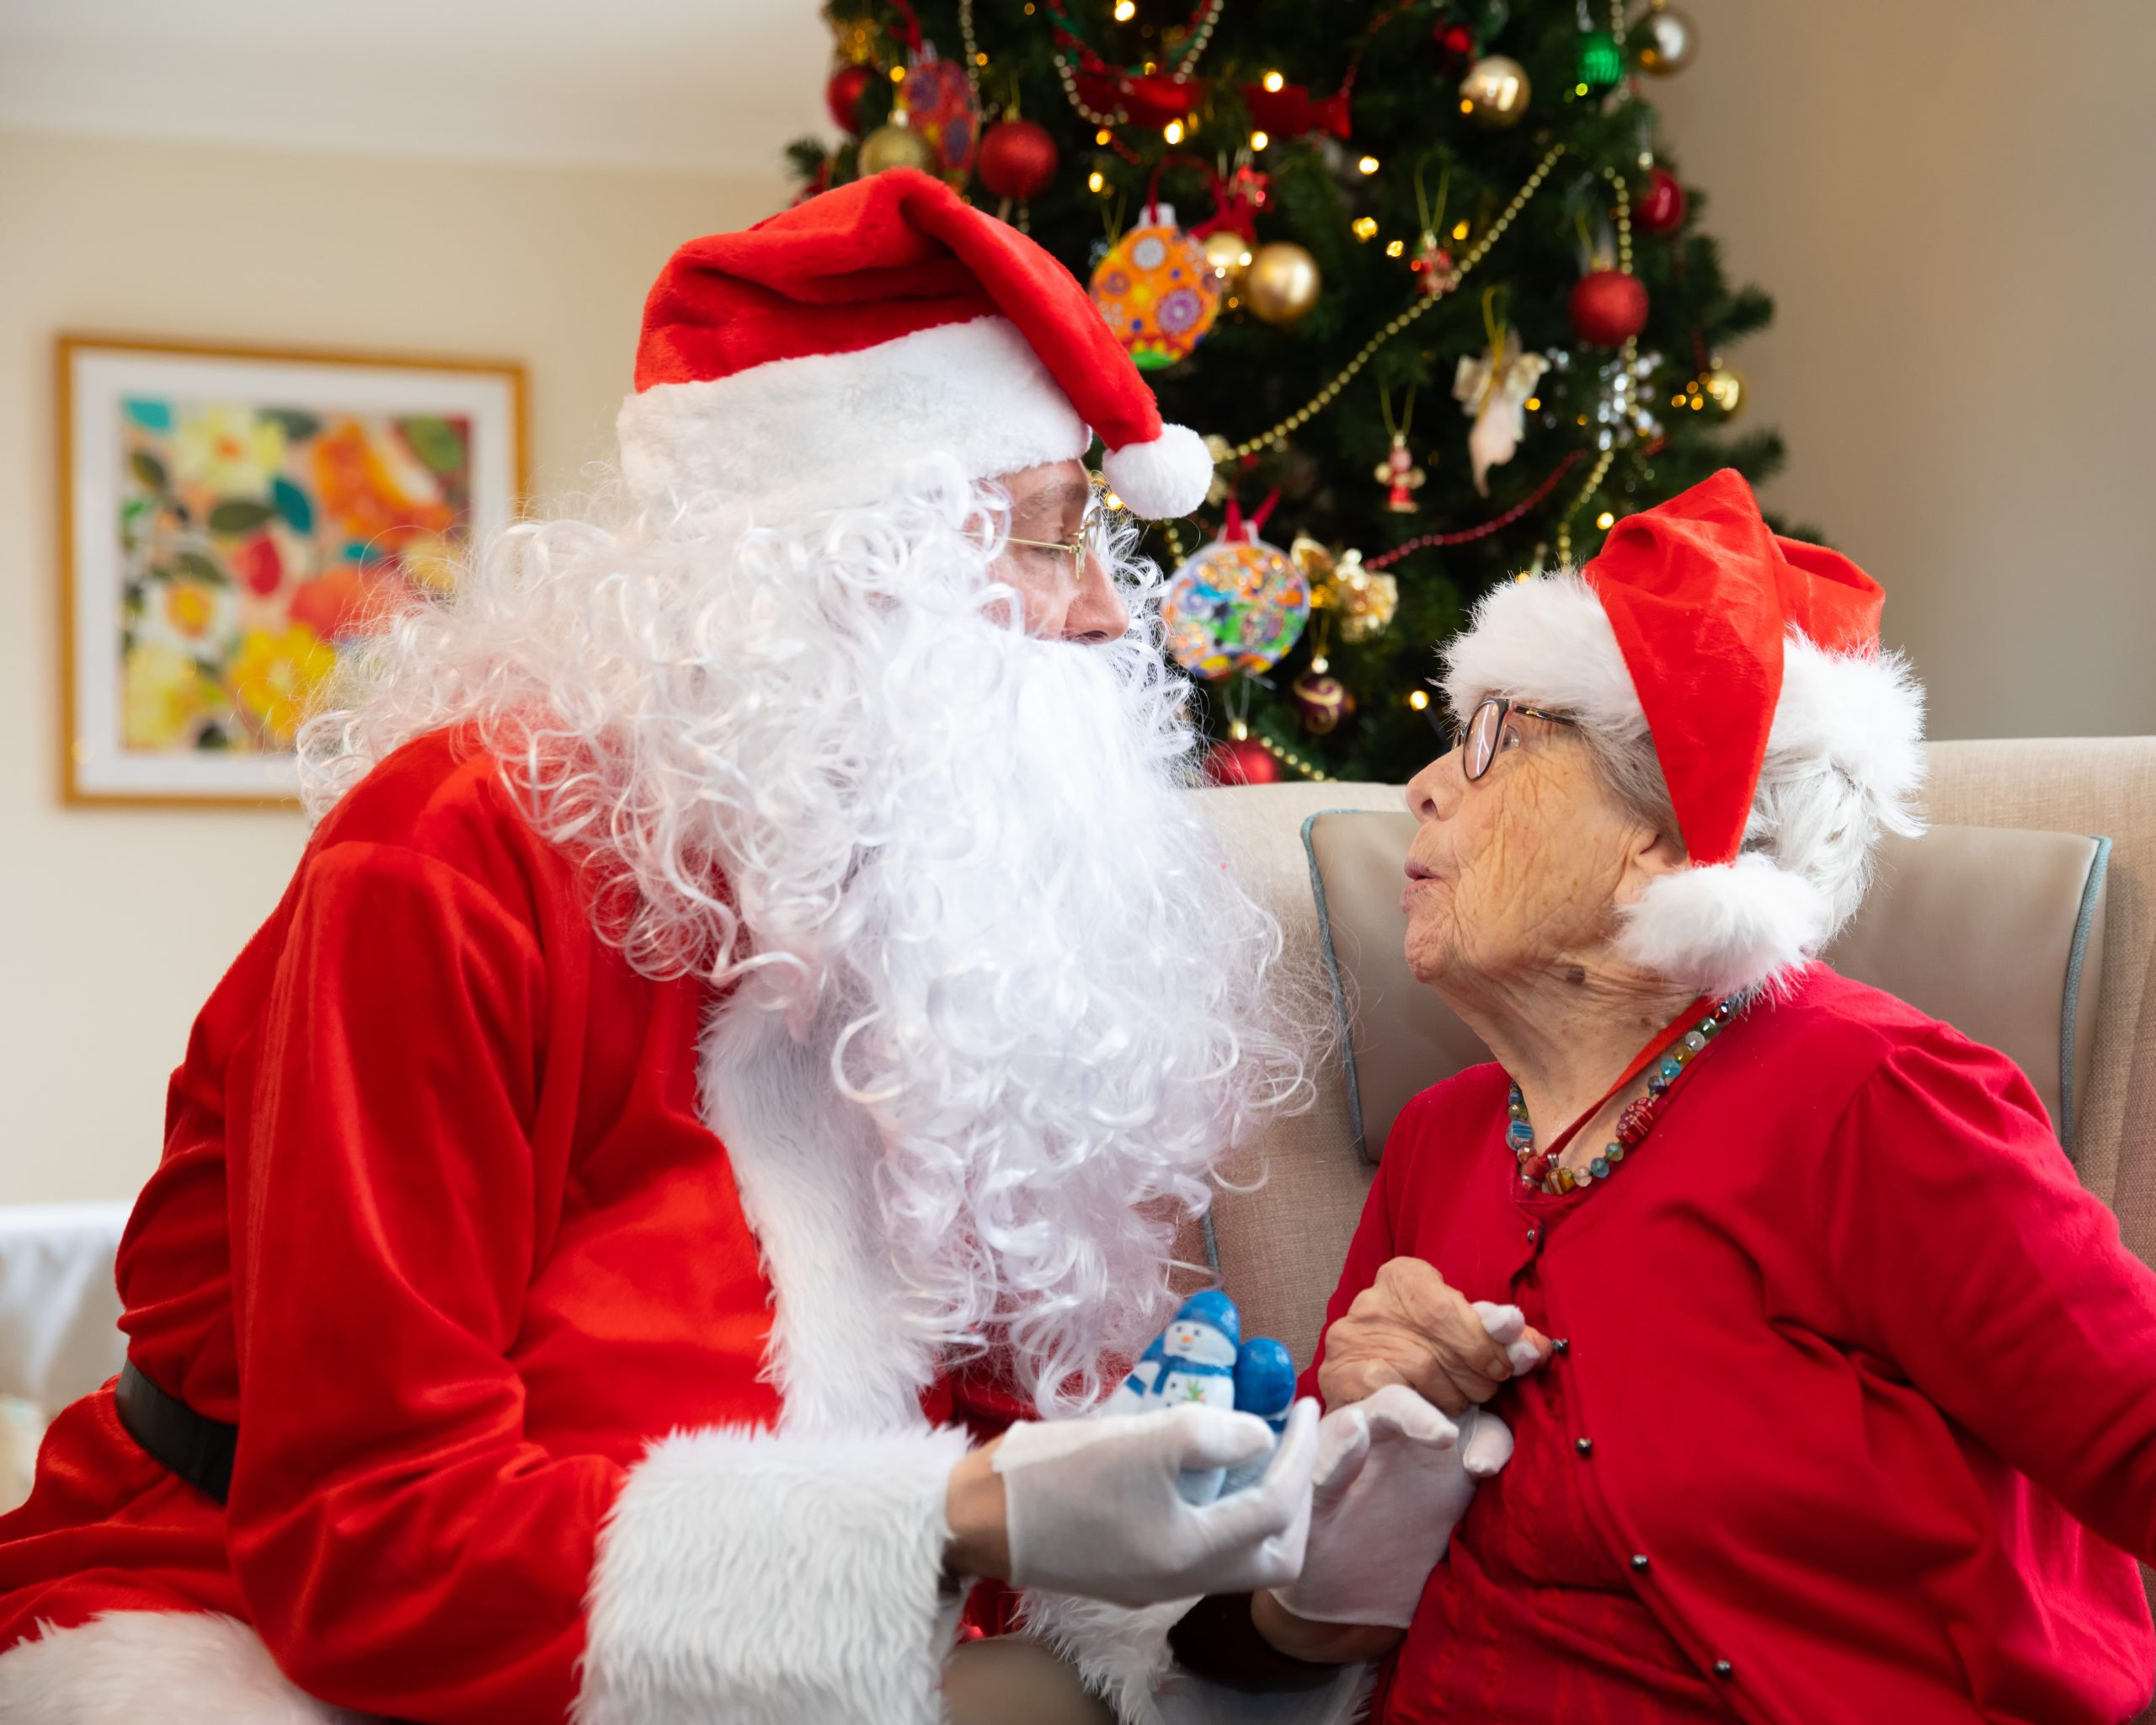 Santa and Coulsdon resident sat together